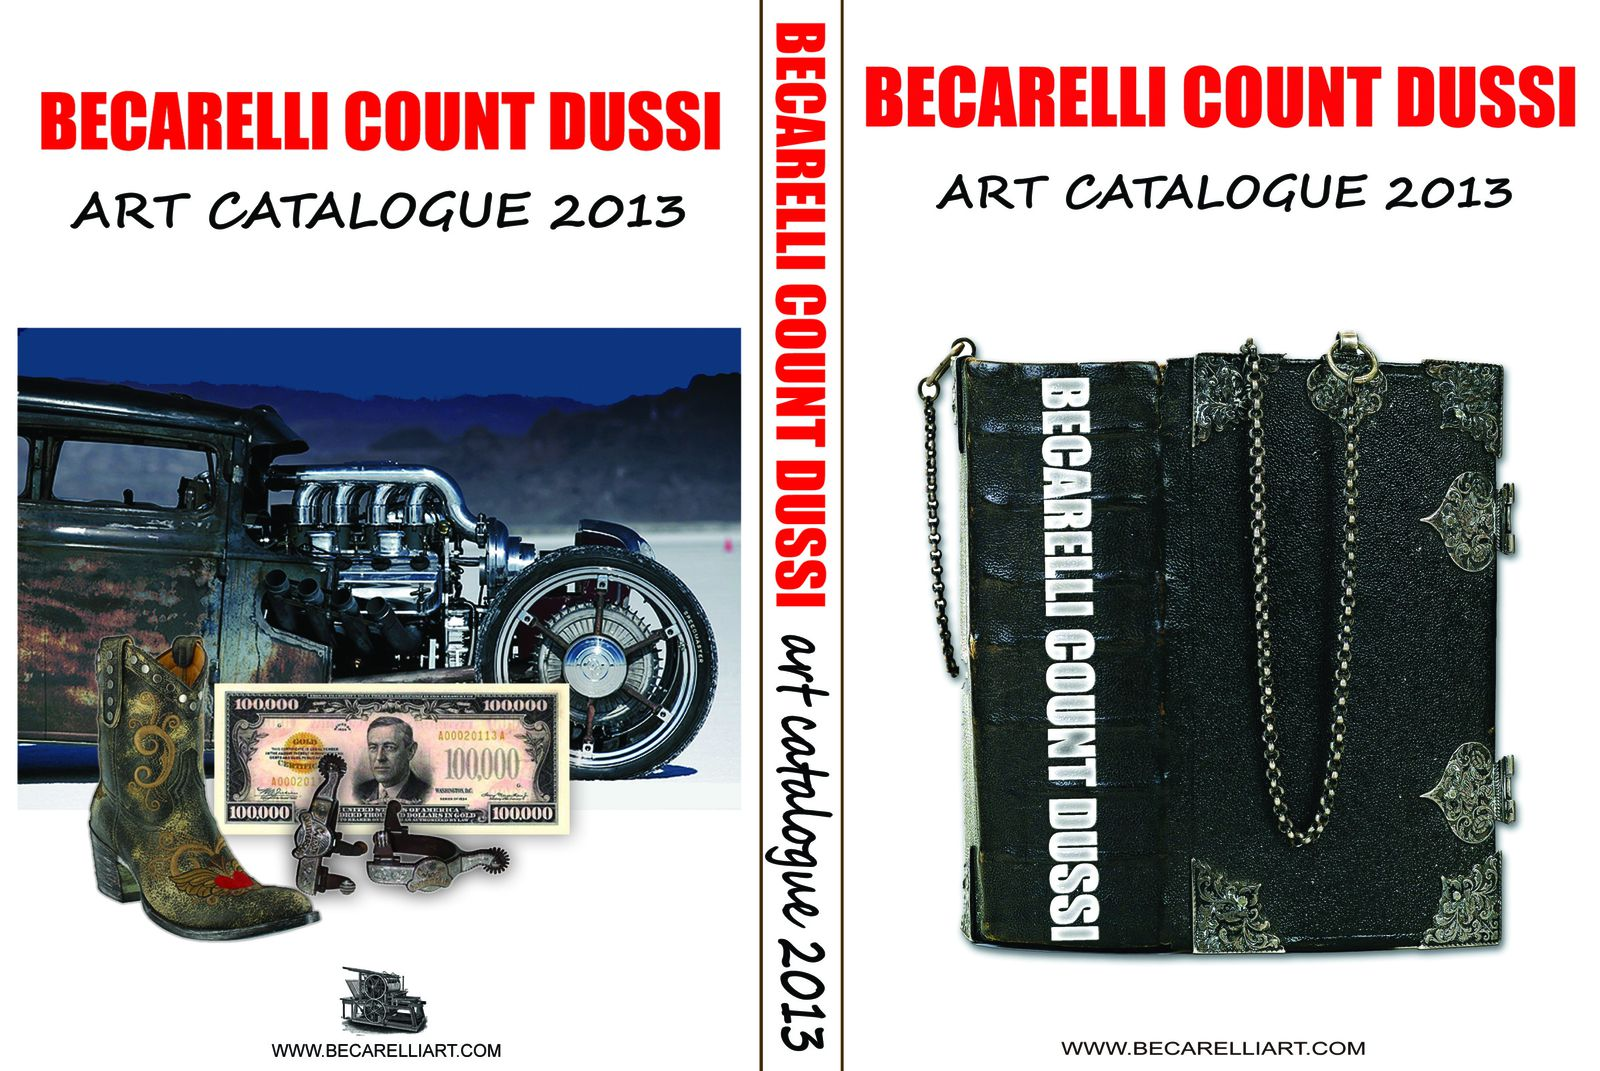 MY NEW ART CATALOGUE - 2013